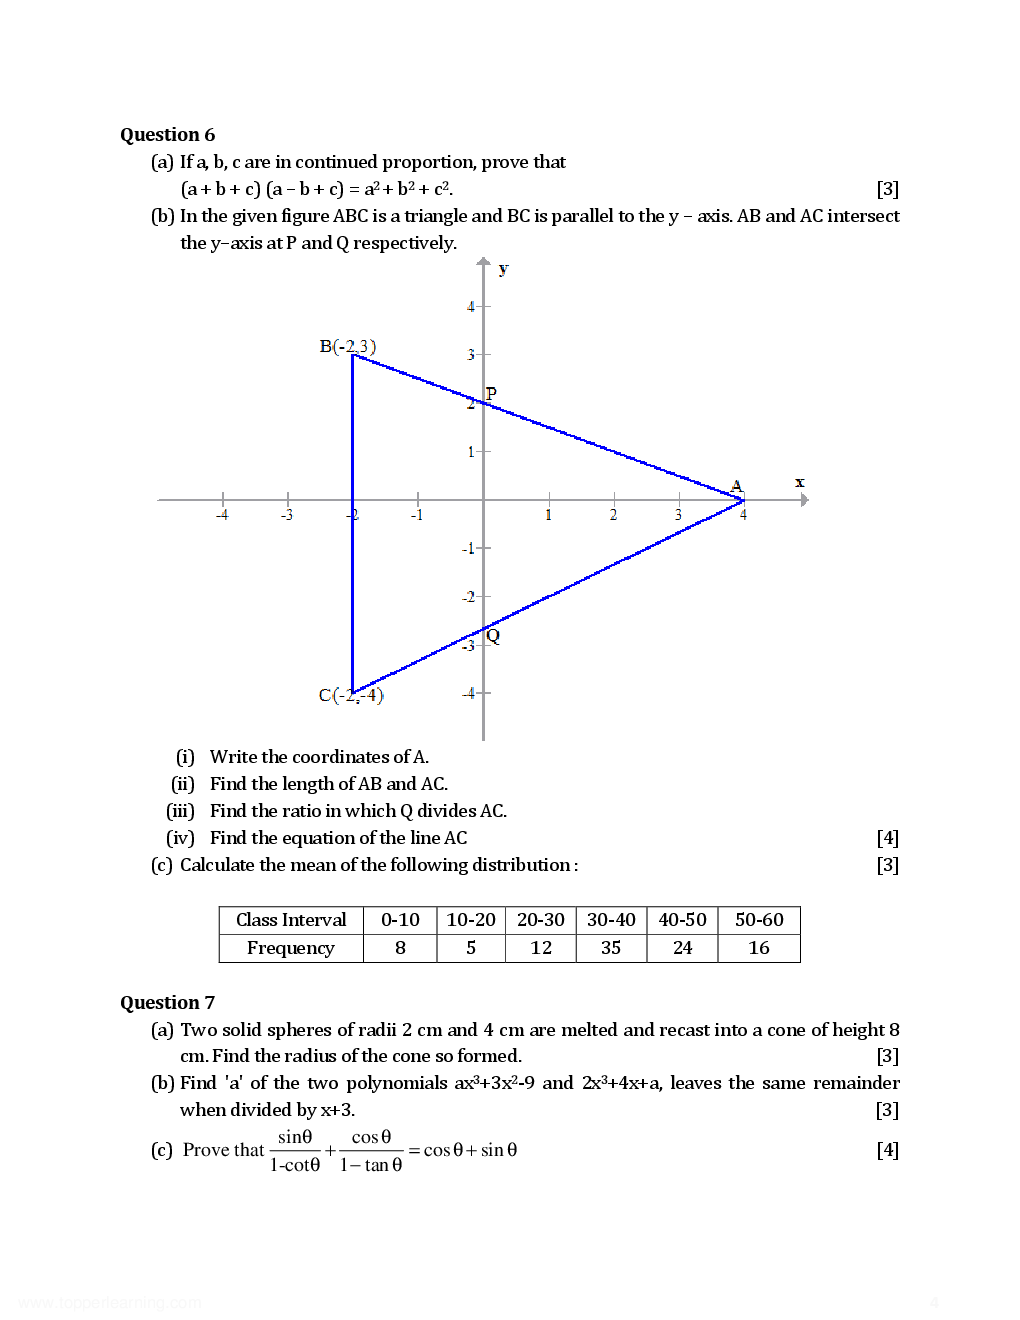 ICSE Previous Year Solved Question Papers For Class 10 Mathematics 2012-2015 - Page 5